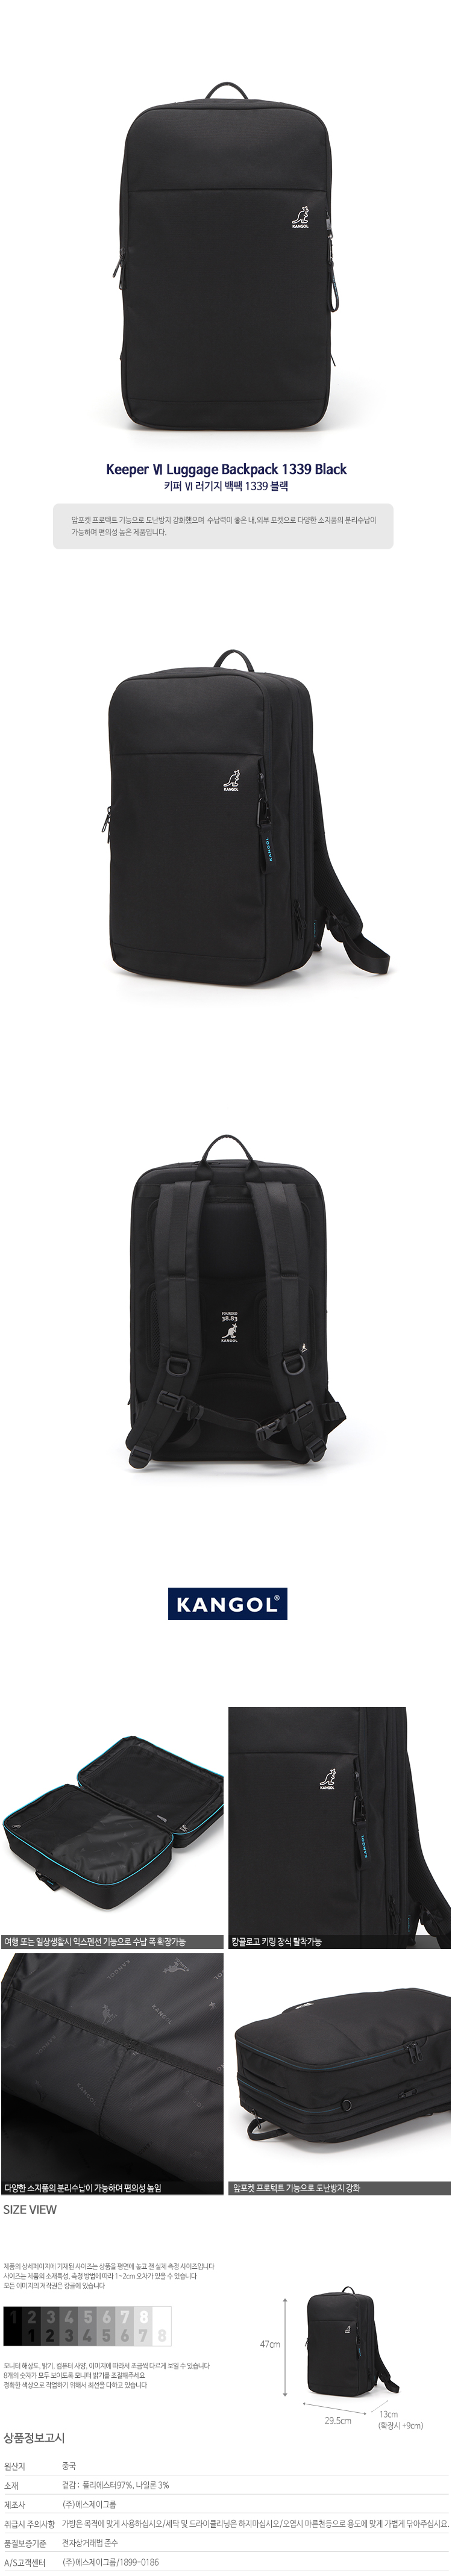 Keeper Ⅵ Luggage Backpack 1339 BLACK